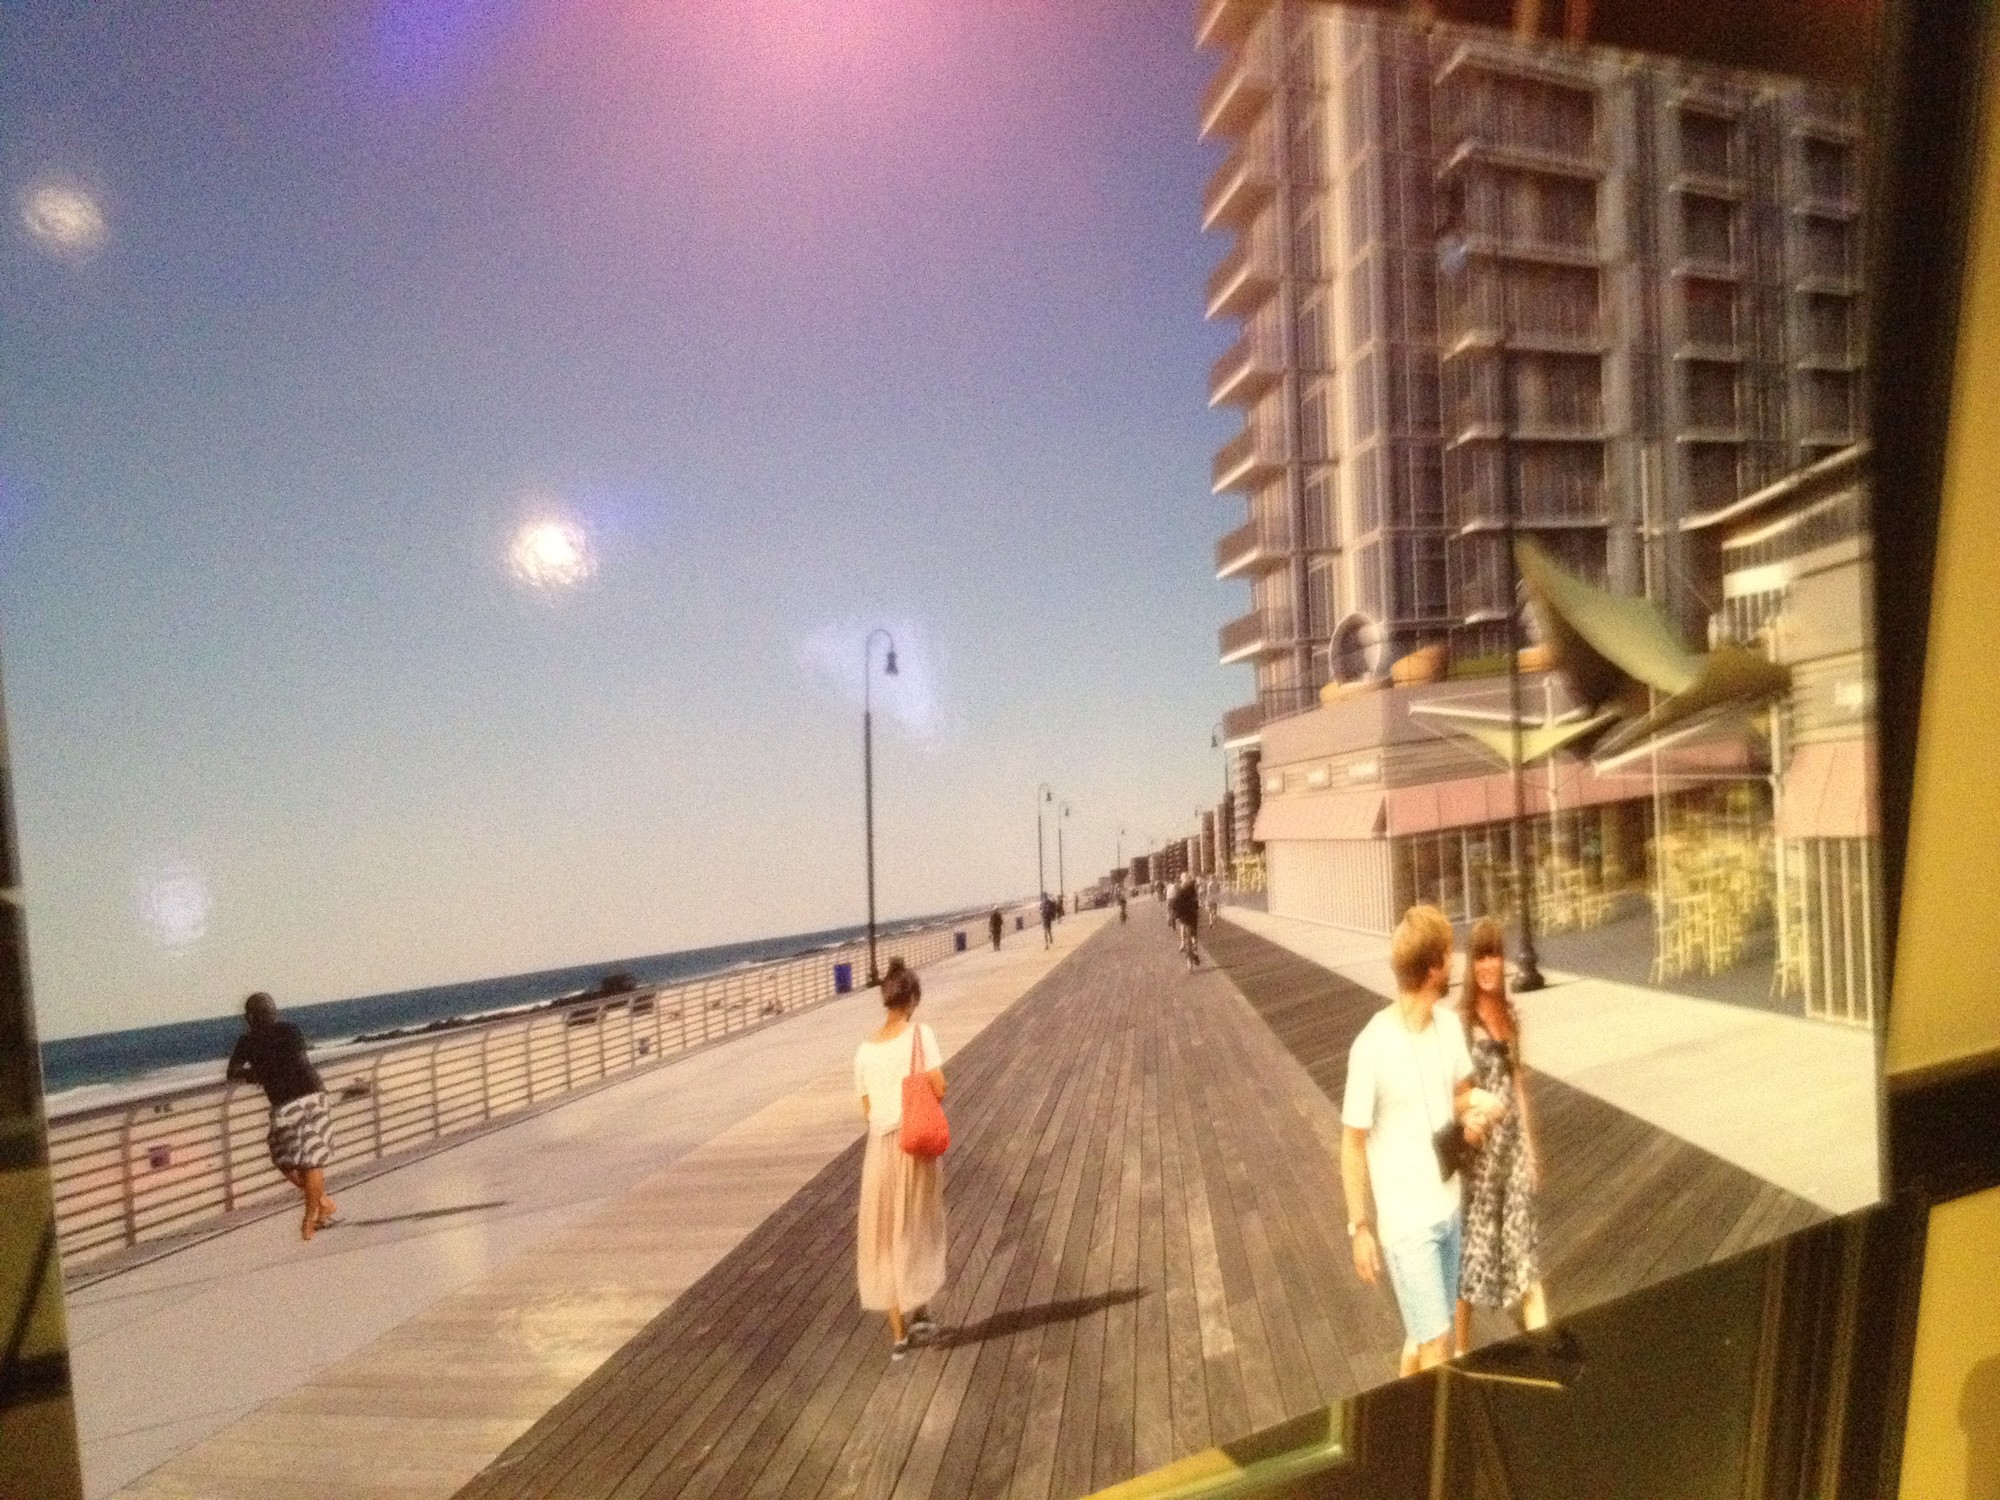 A rendering of the shops that would run along the boardwalk.